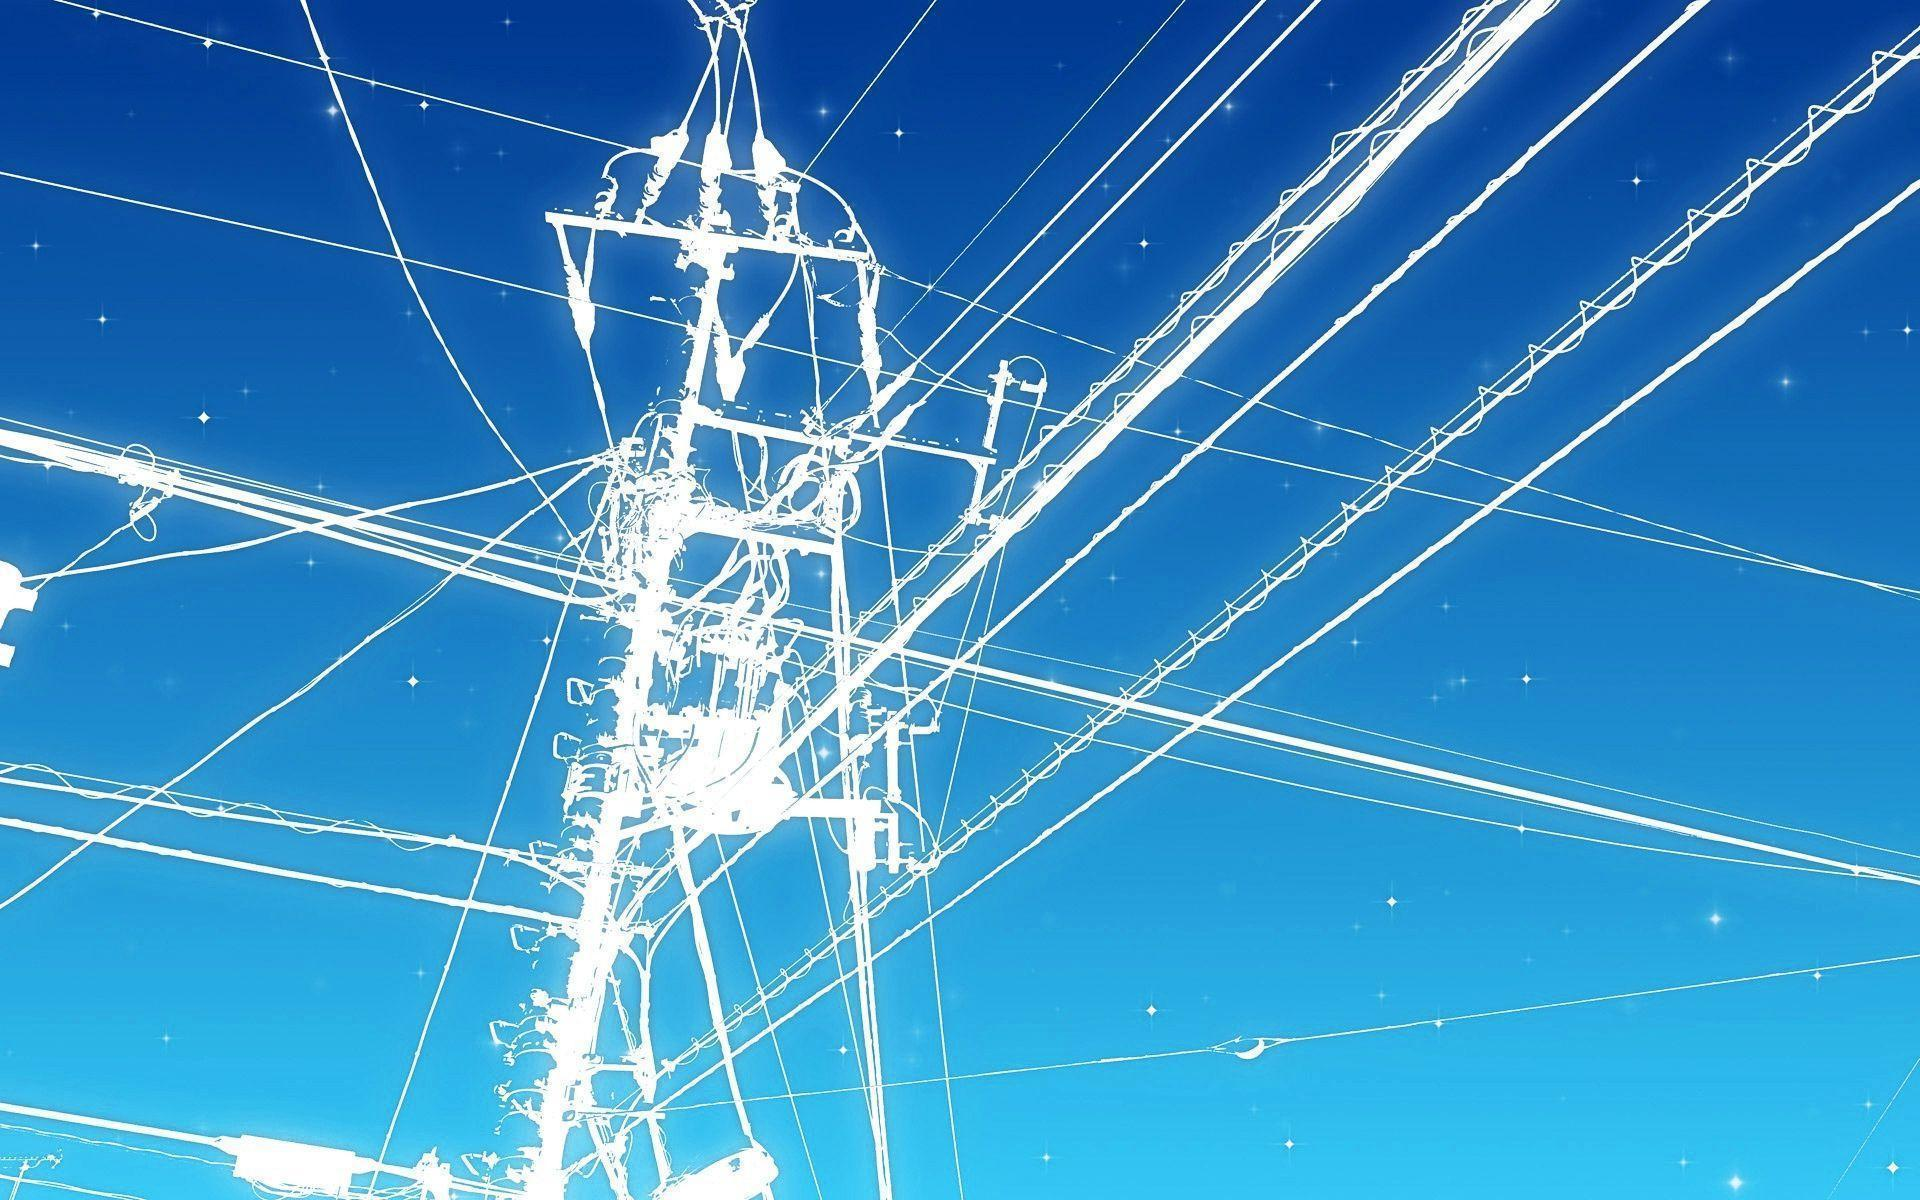 Electric Power Wallpapers - Top Free Electric Power Backgrounds -  WallpaperAccess